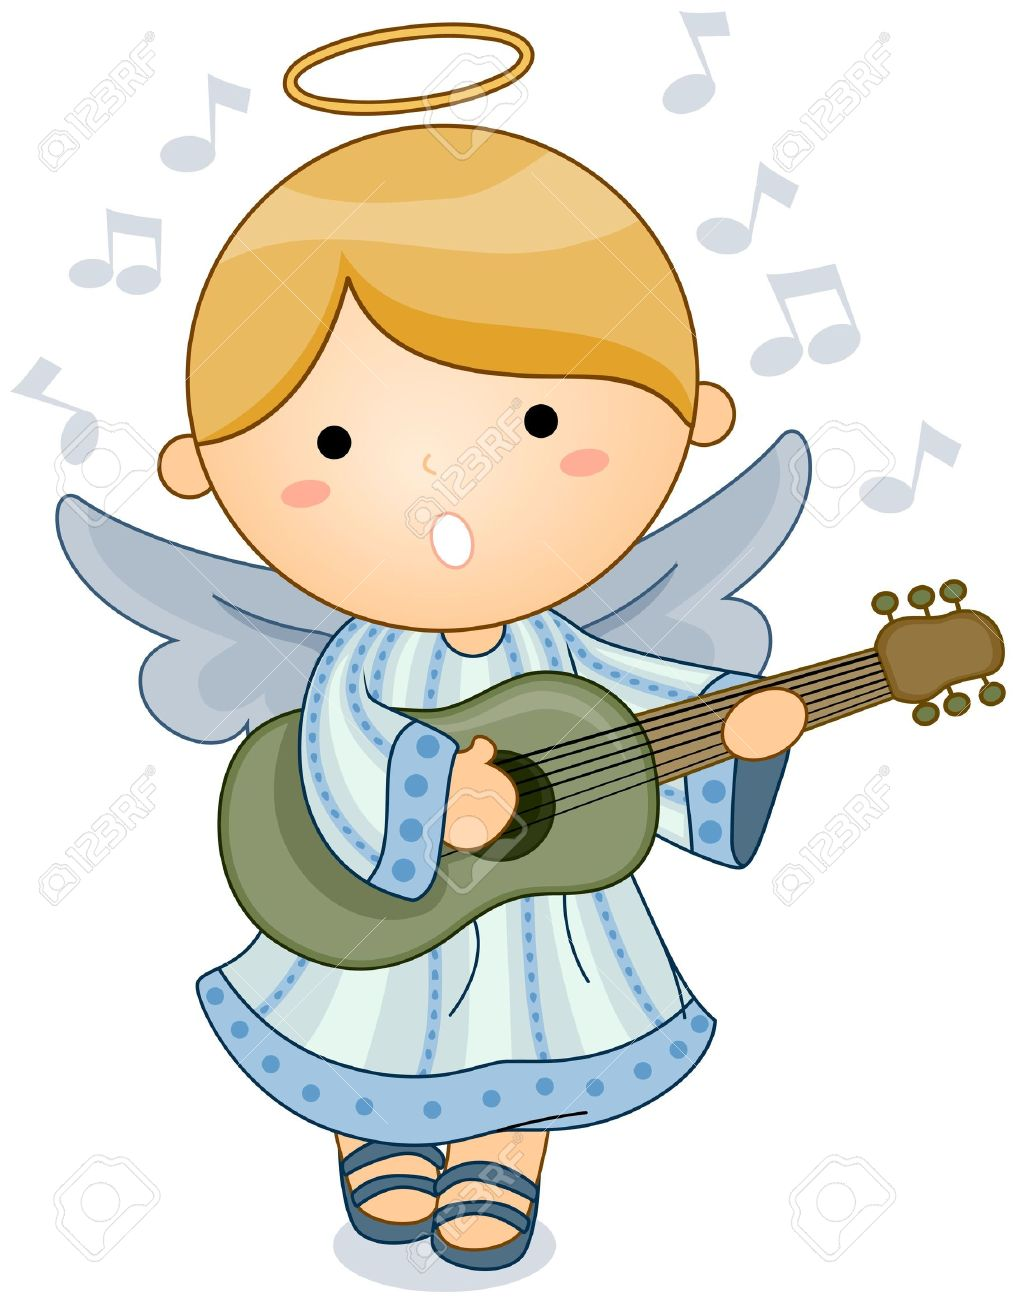 364 angels singing stock illustrations cliparts and royalty free